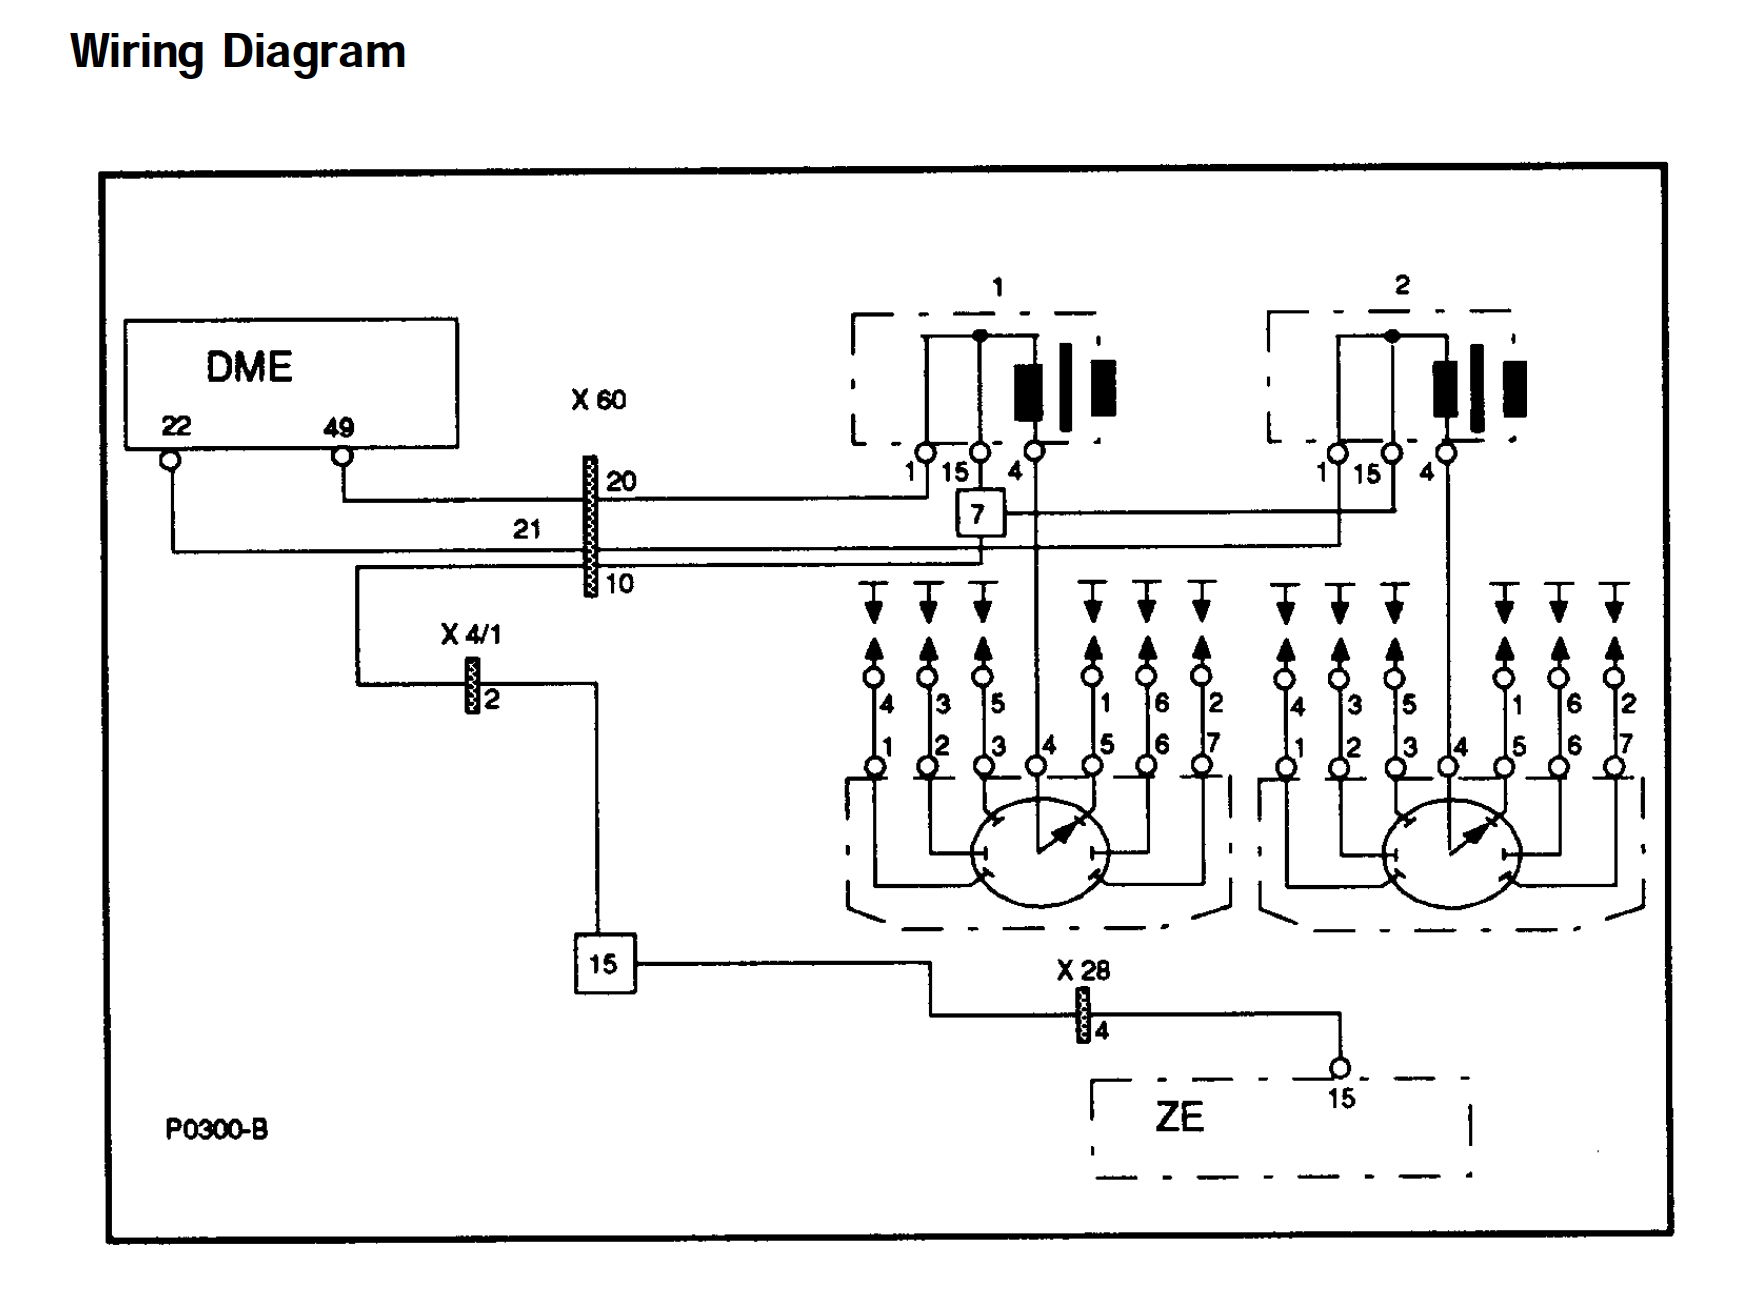 Spark Plug Wiring Diagram from cimg0.ibsrv.net